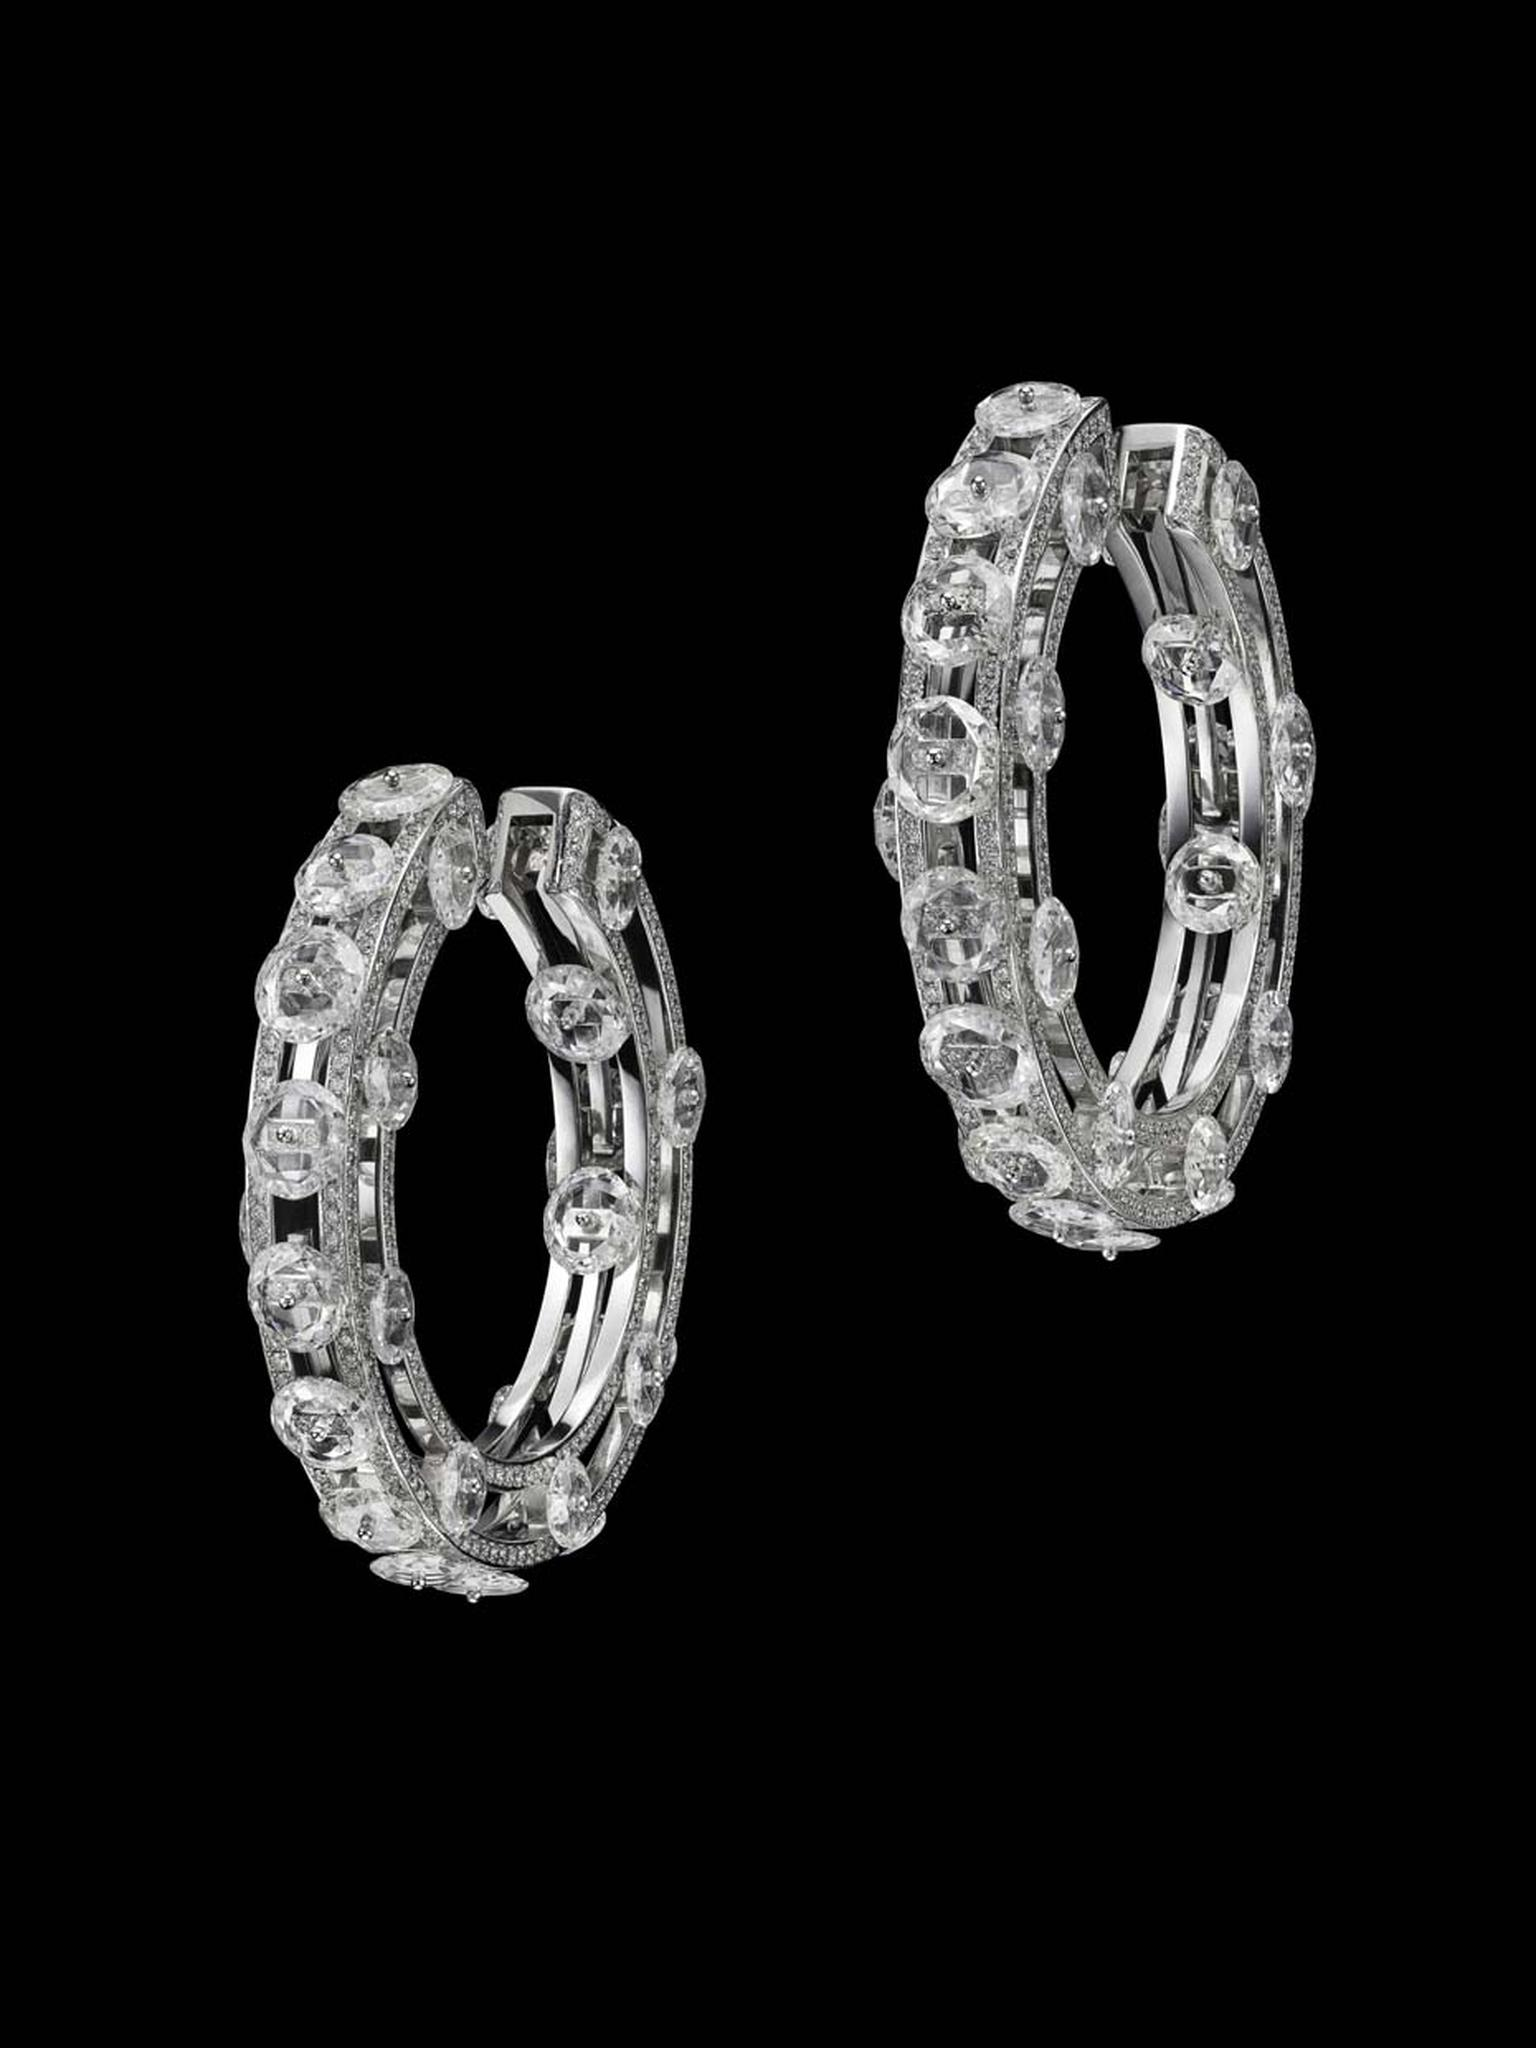 Suzanne Syz Wheel of Brilliance earrings in white gold set with 58 slice diamonds and 1,128 diamonds.